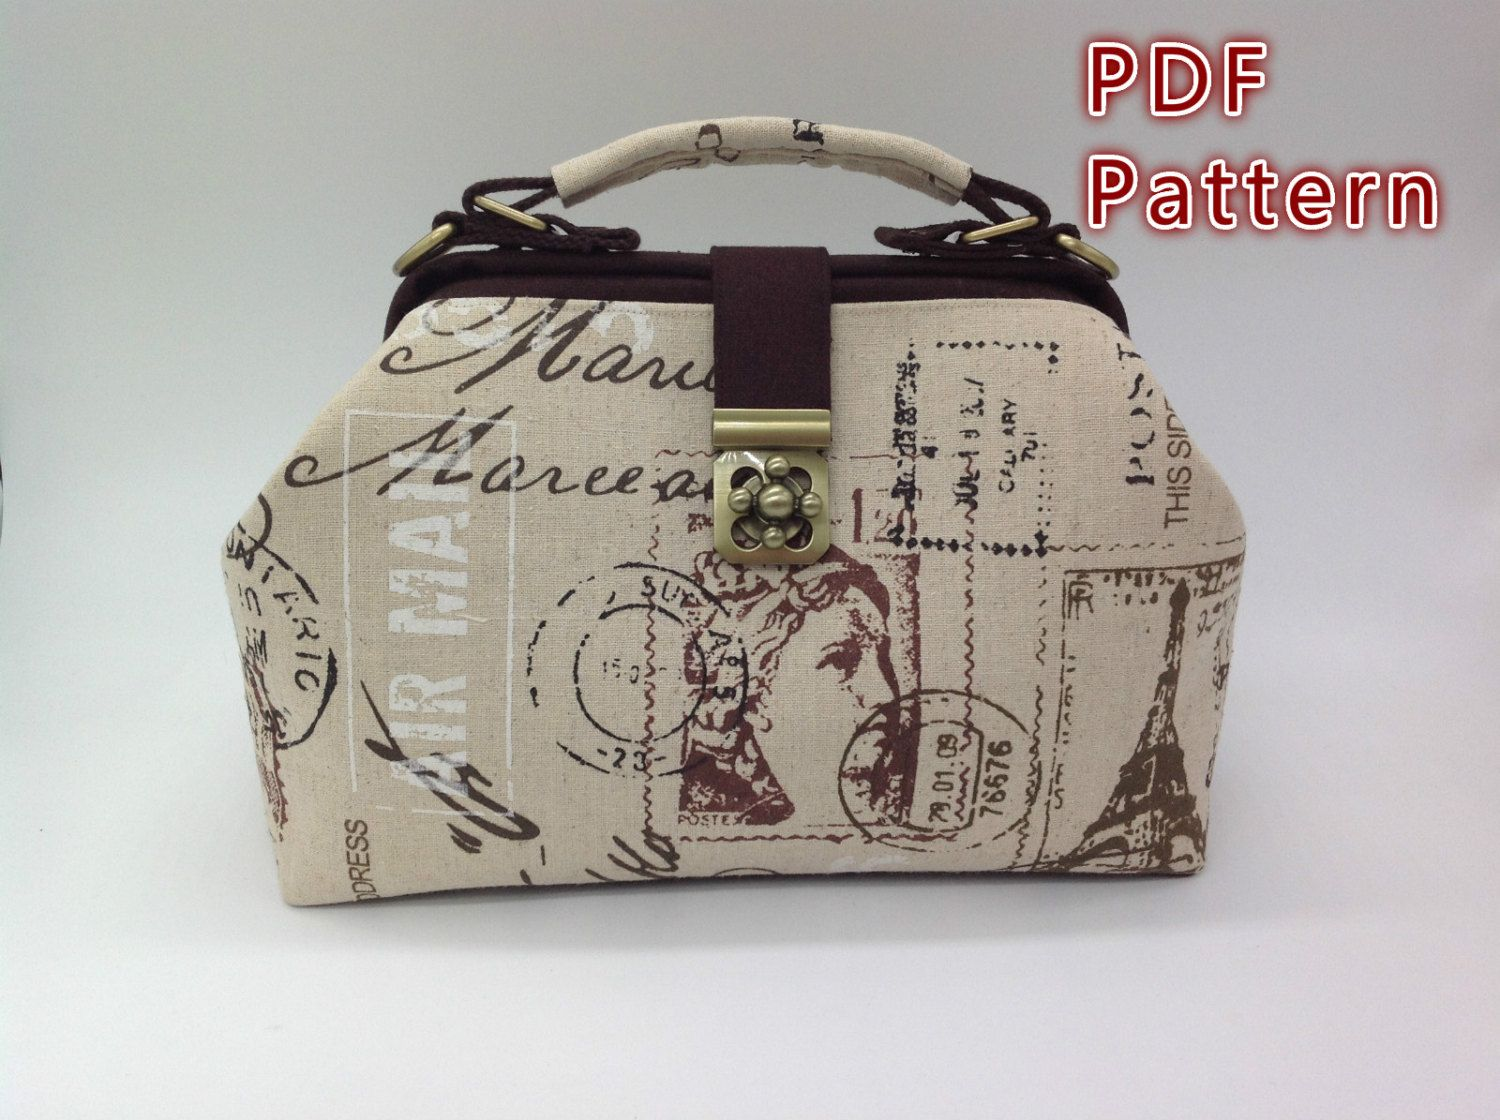 Pdf sewing patterndoctor bag patterndoctor frame bag pattern pdf sewing patterndoctor bag patterndoctor frame bag pattern diy bag pattern bankloansurffo Gallery